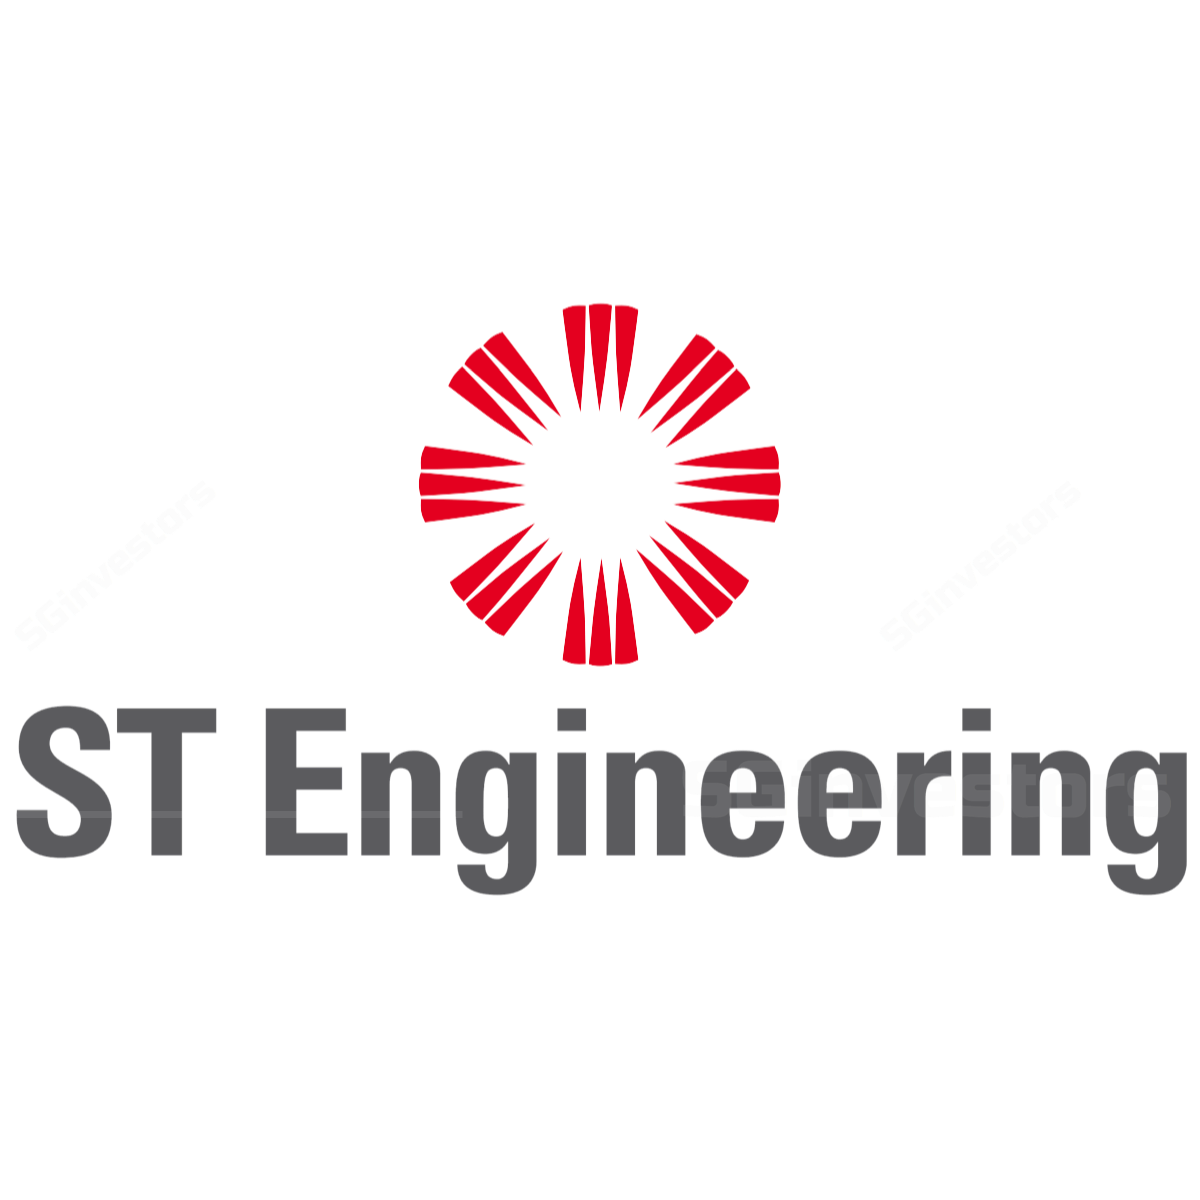 ST Engineering - CIMB Research 2017-02-16: Strong order pipeline